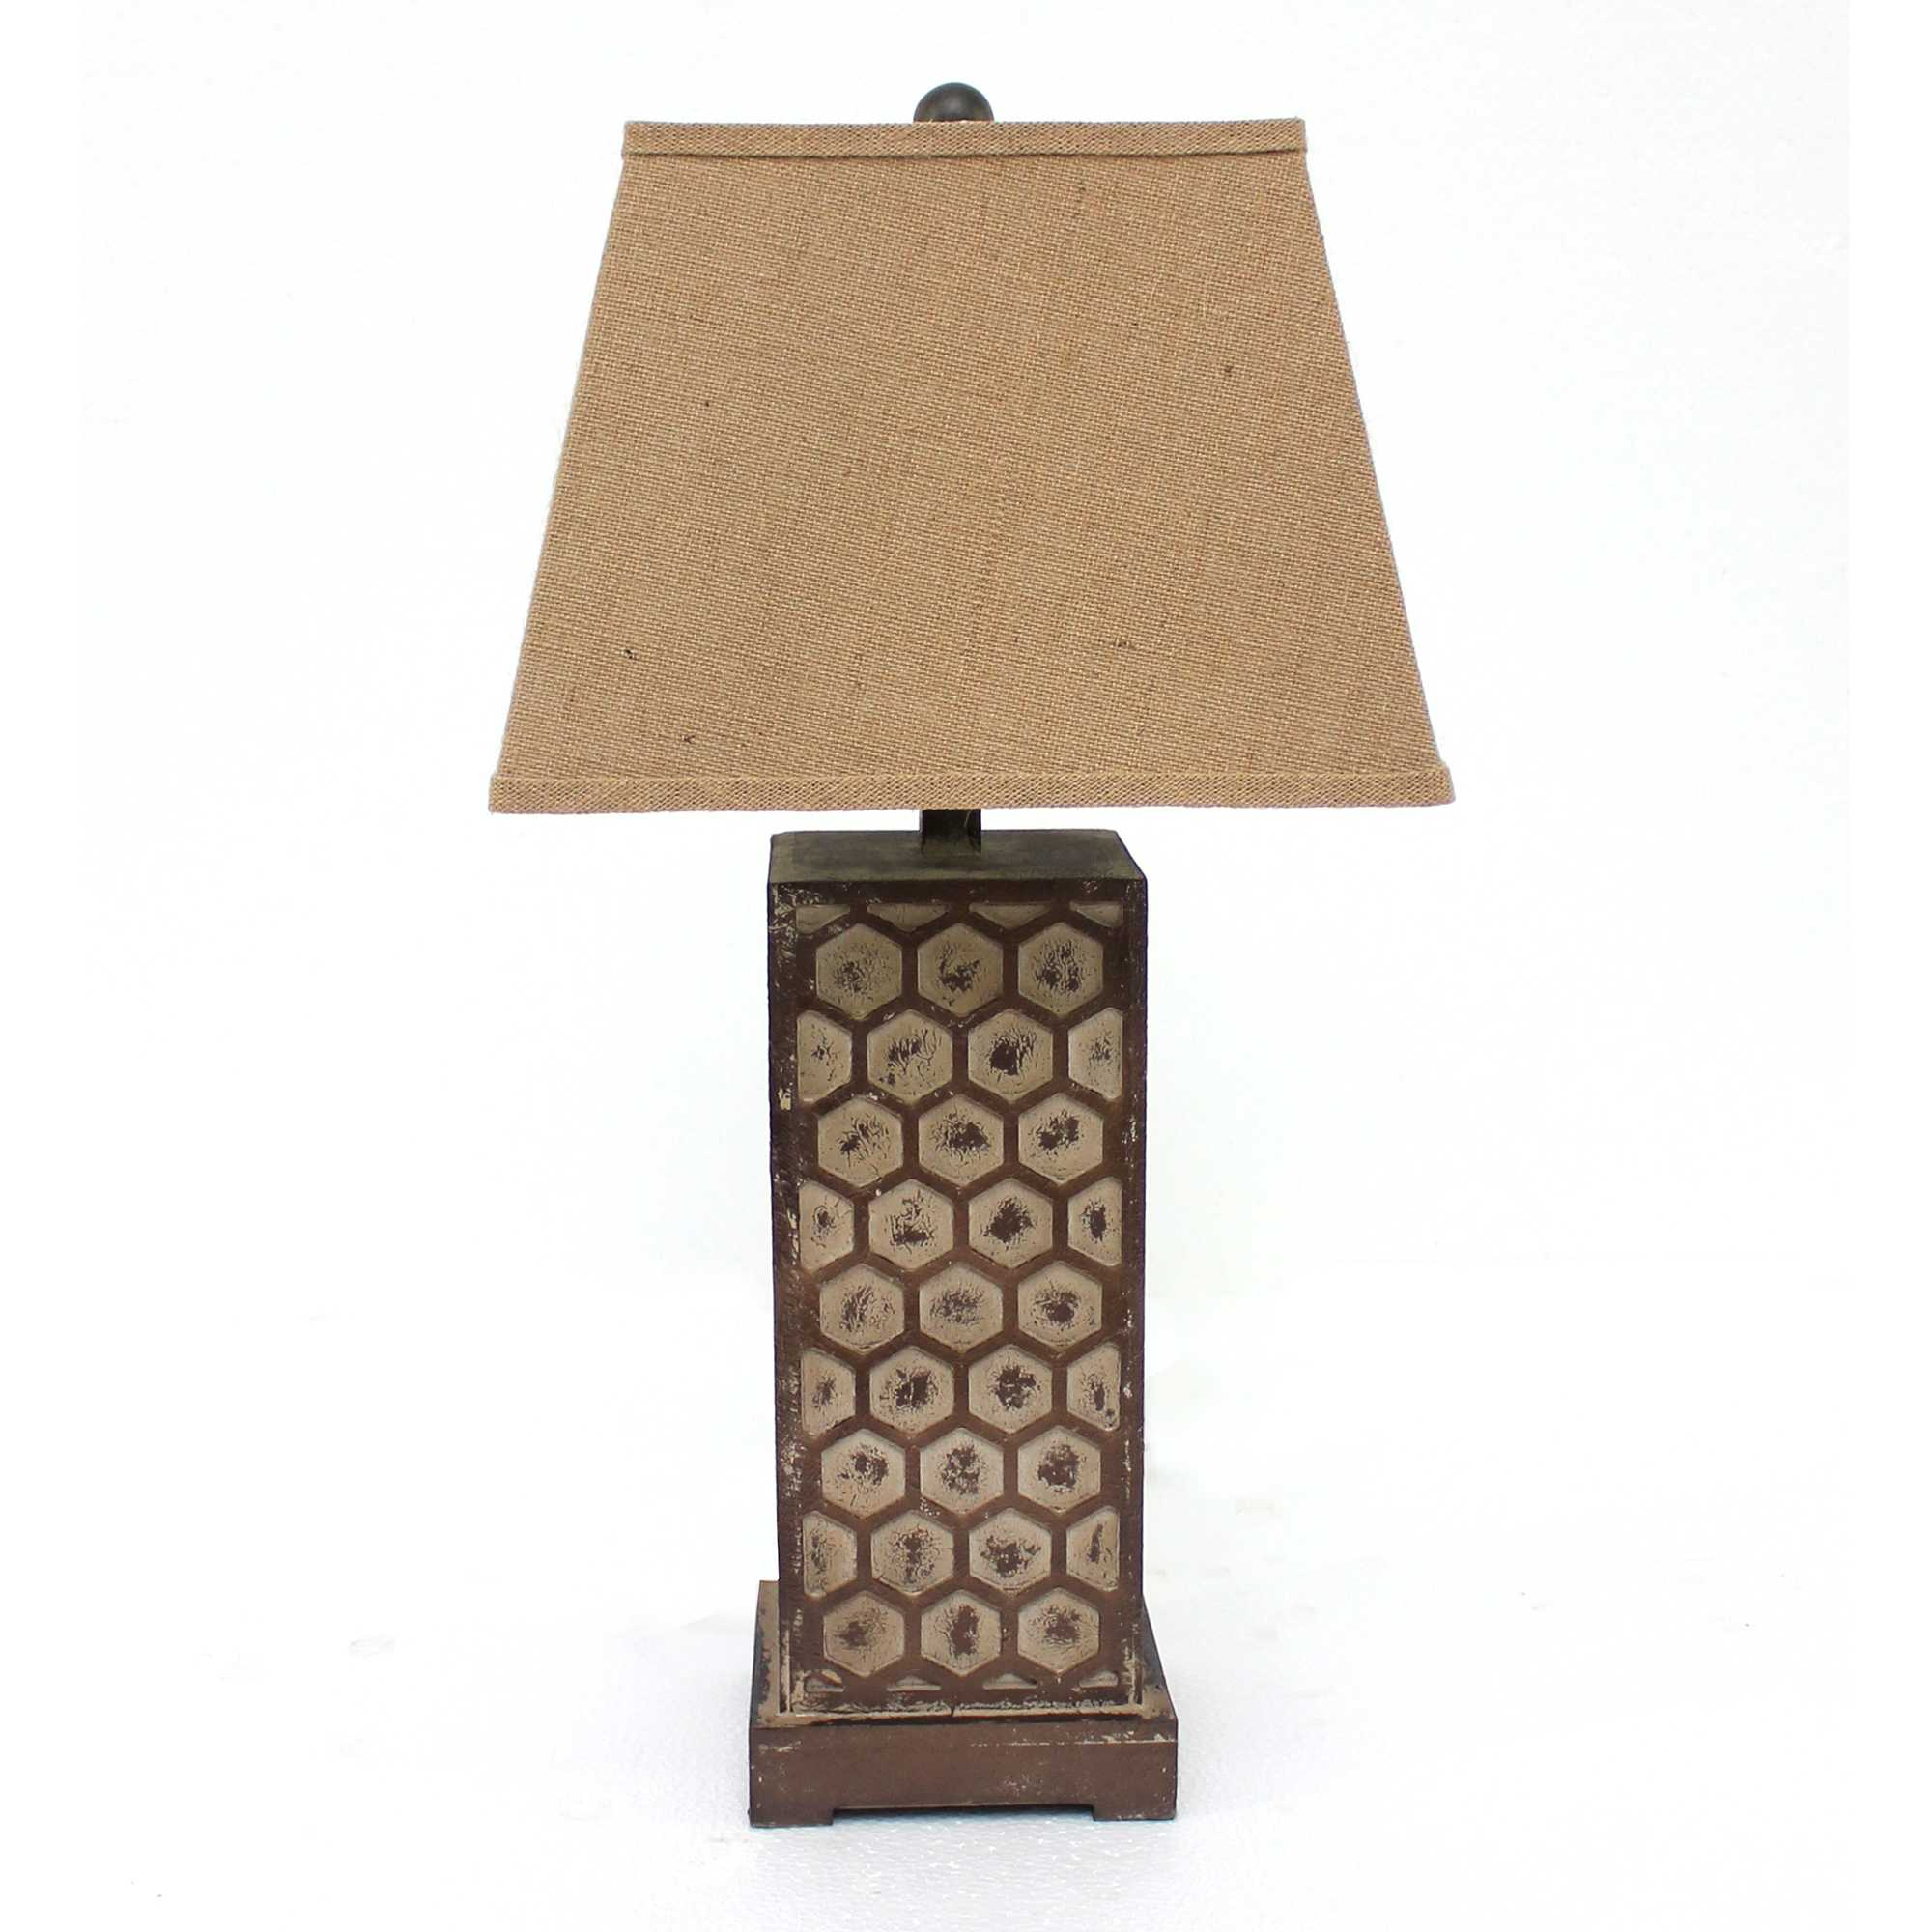 "29"" X 28"" X 8"" Brown Industrial Table Lamp With Honeycombed Metal Base Set of 2"